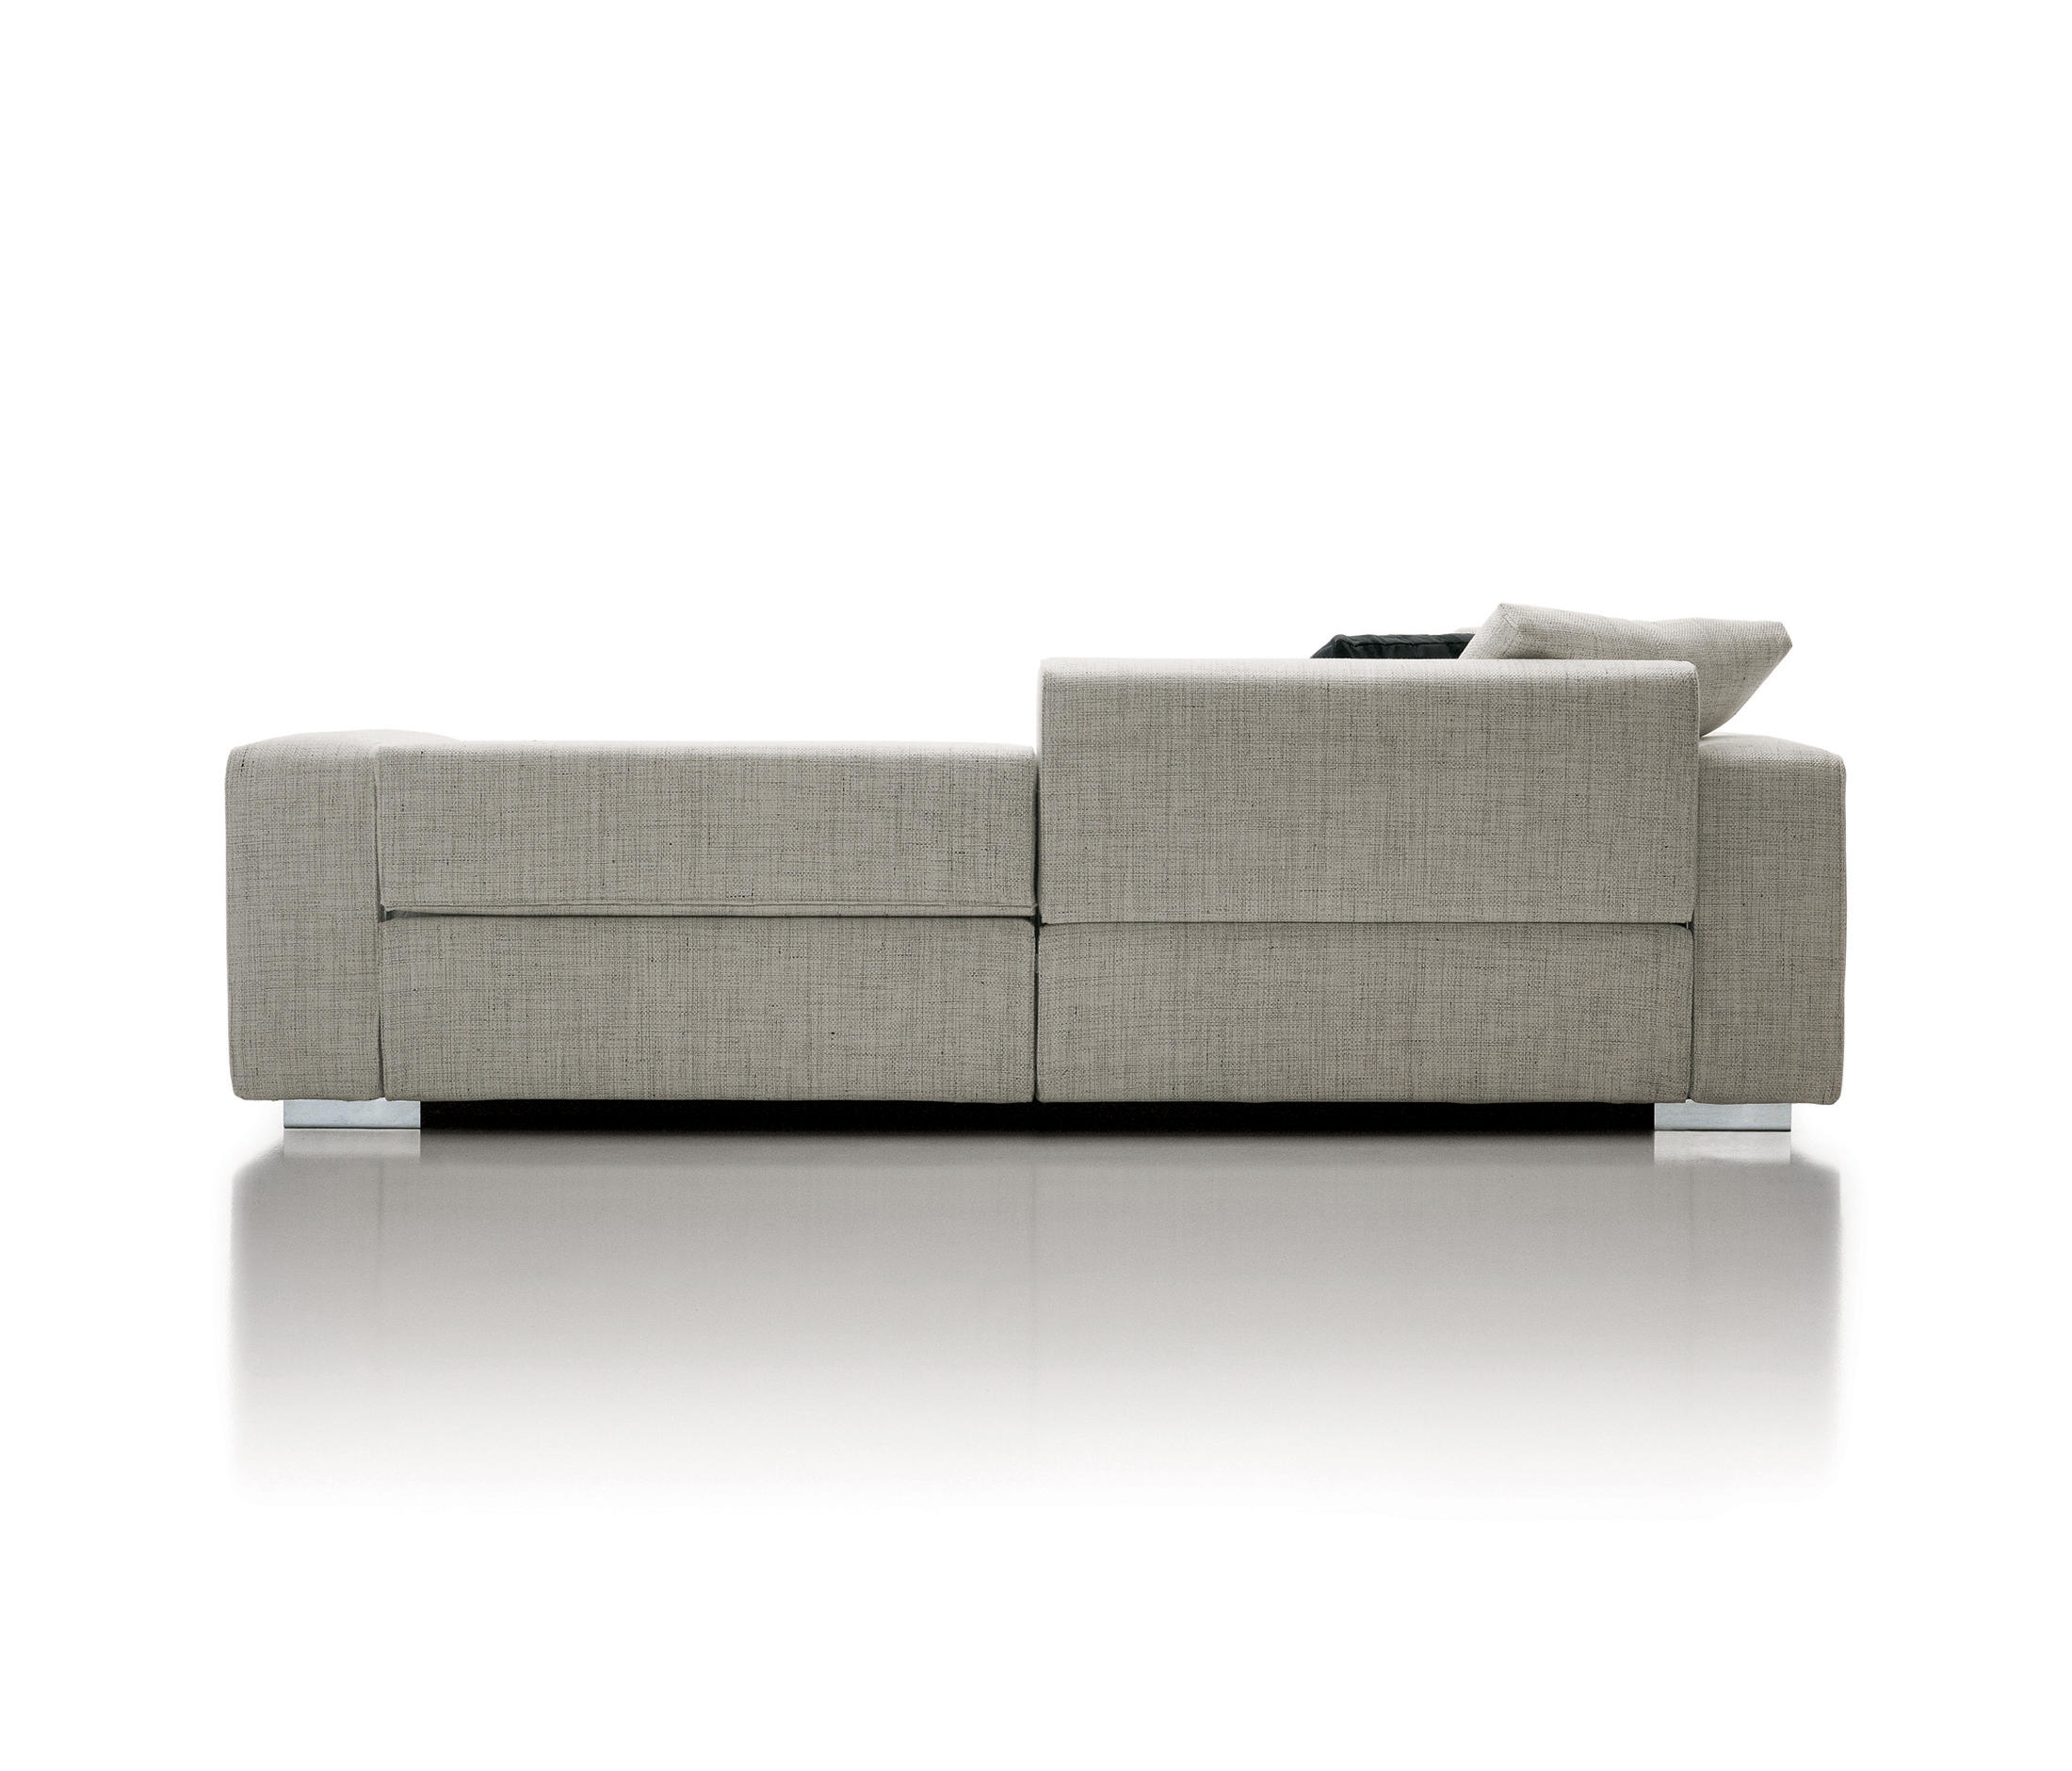 Turner sof s lounge de molteni c architonic for Molteni catalogo